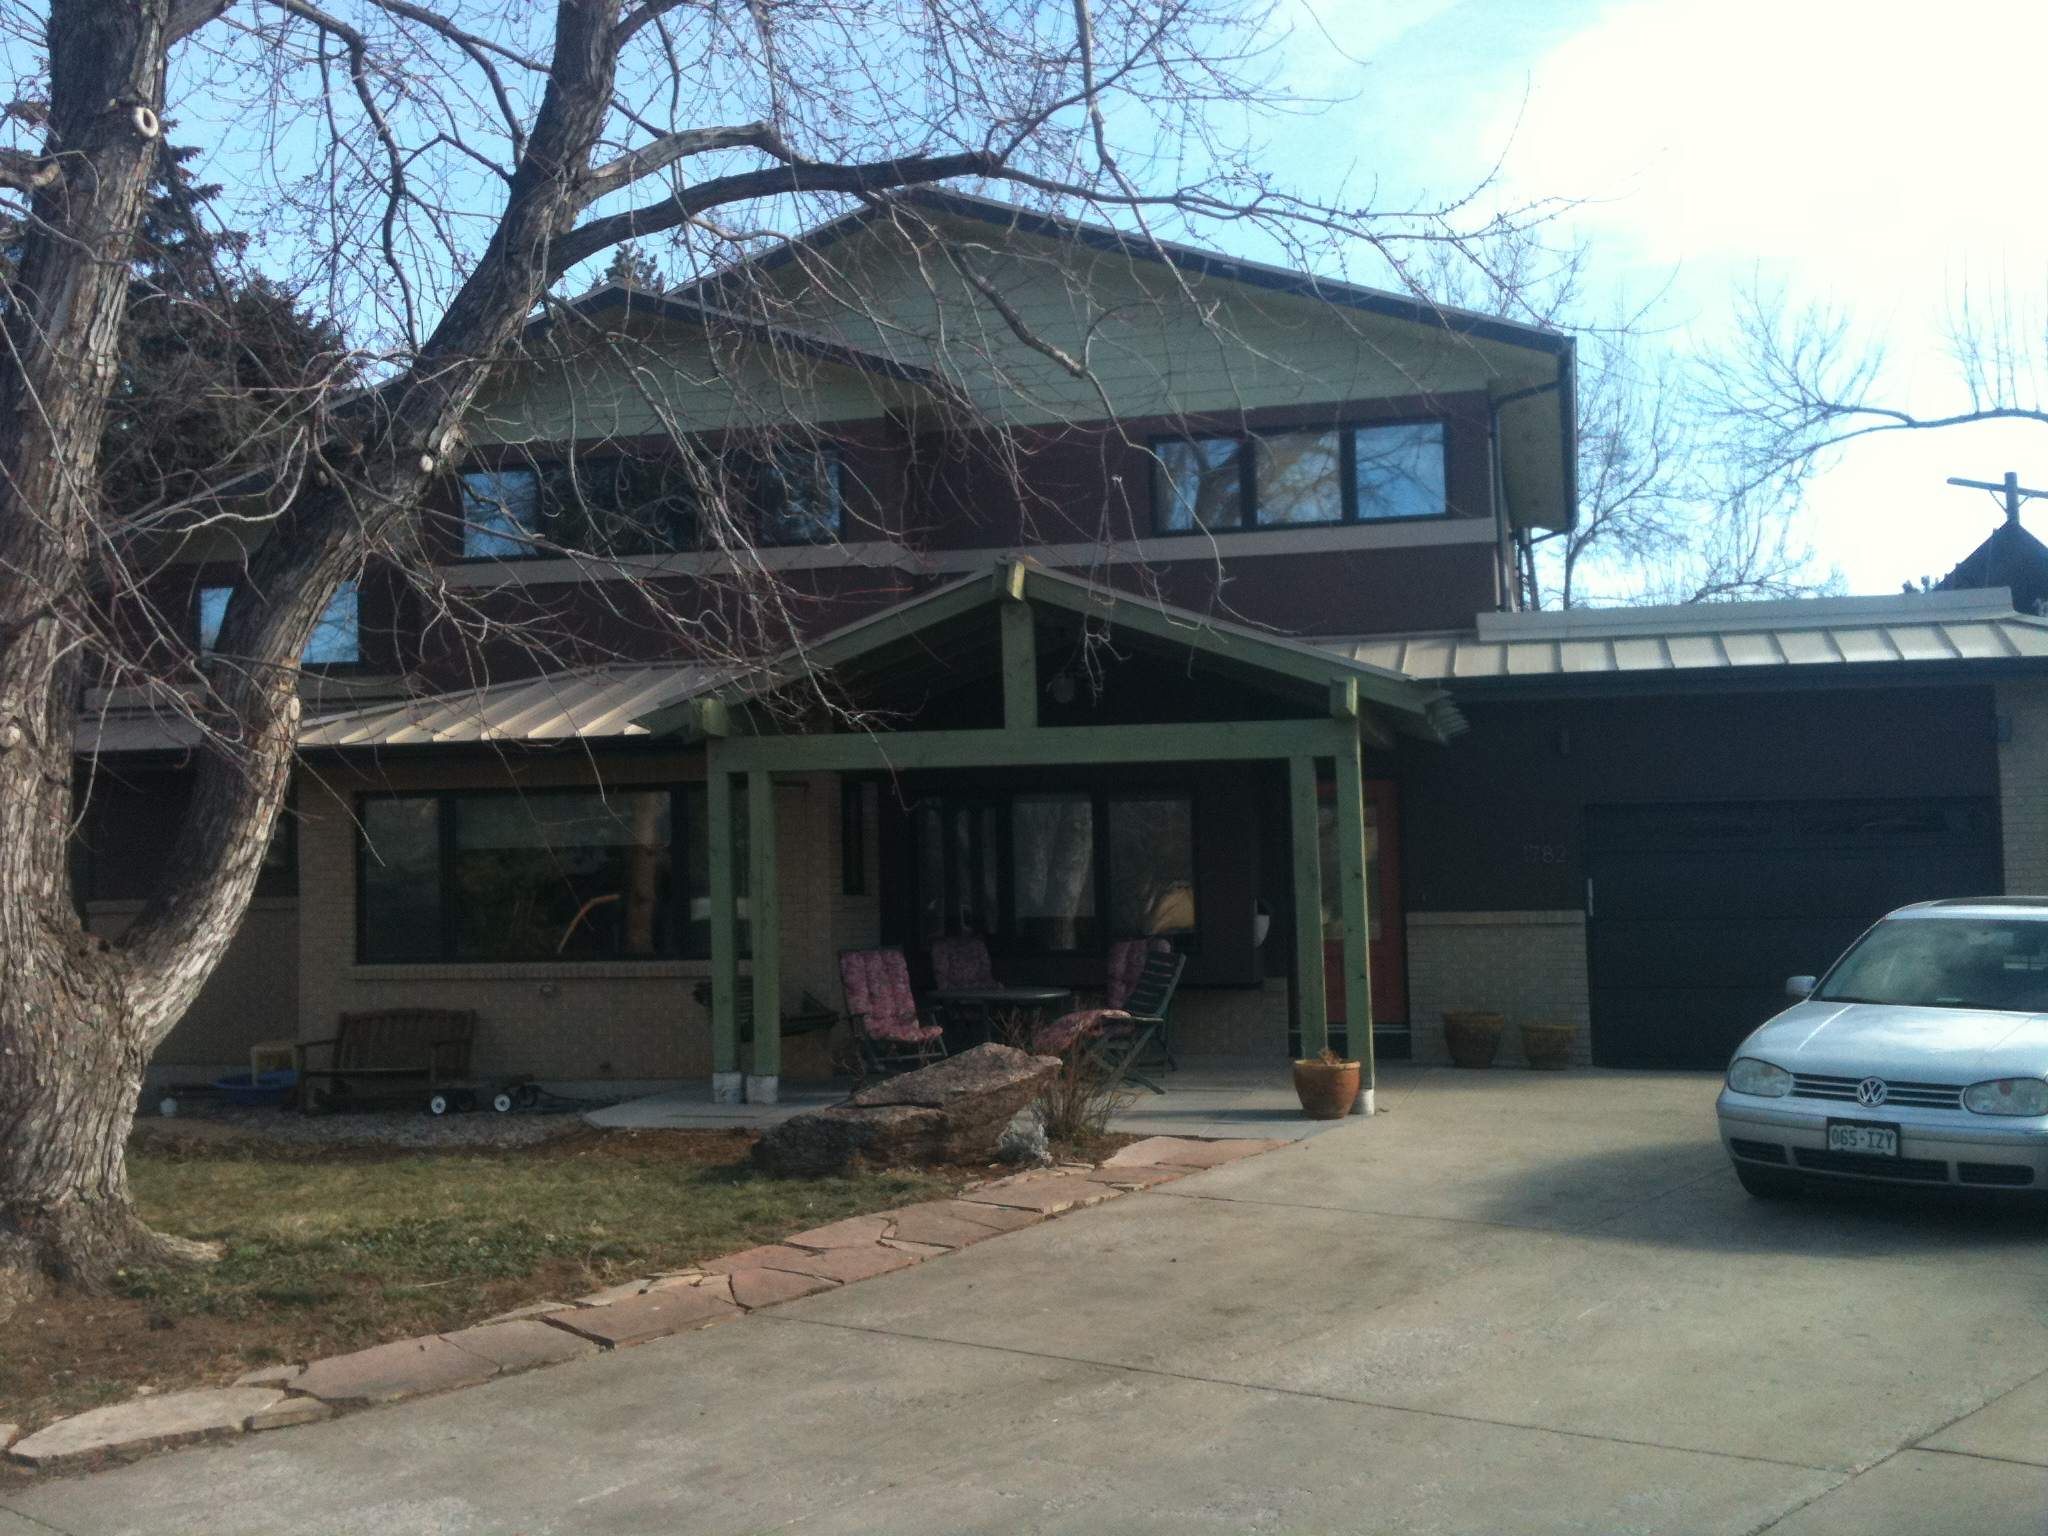 zed 2 - Boulder Colorado pop-top energy efficient  remodel and retrofit